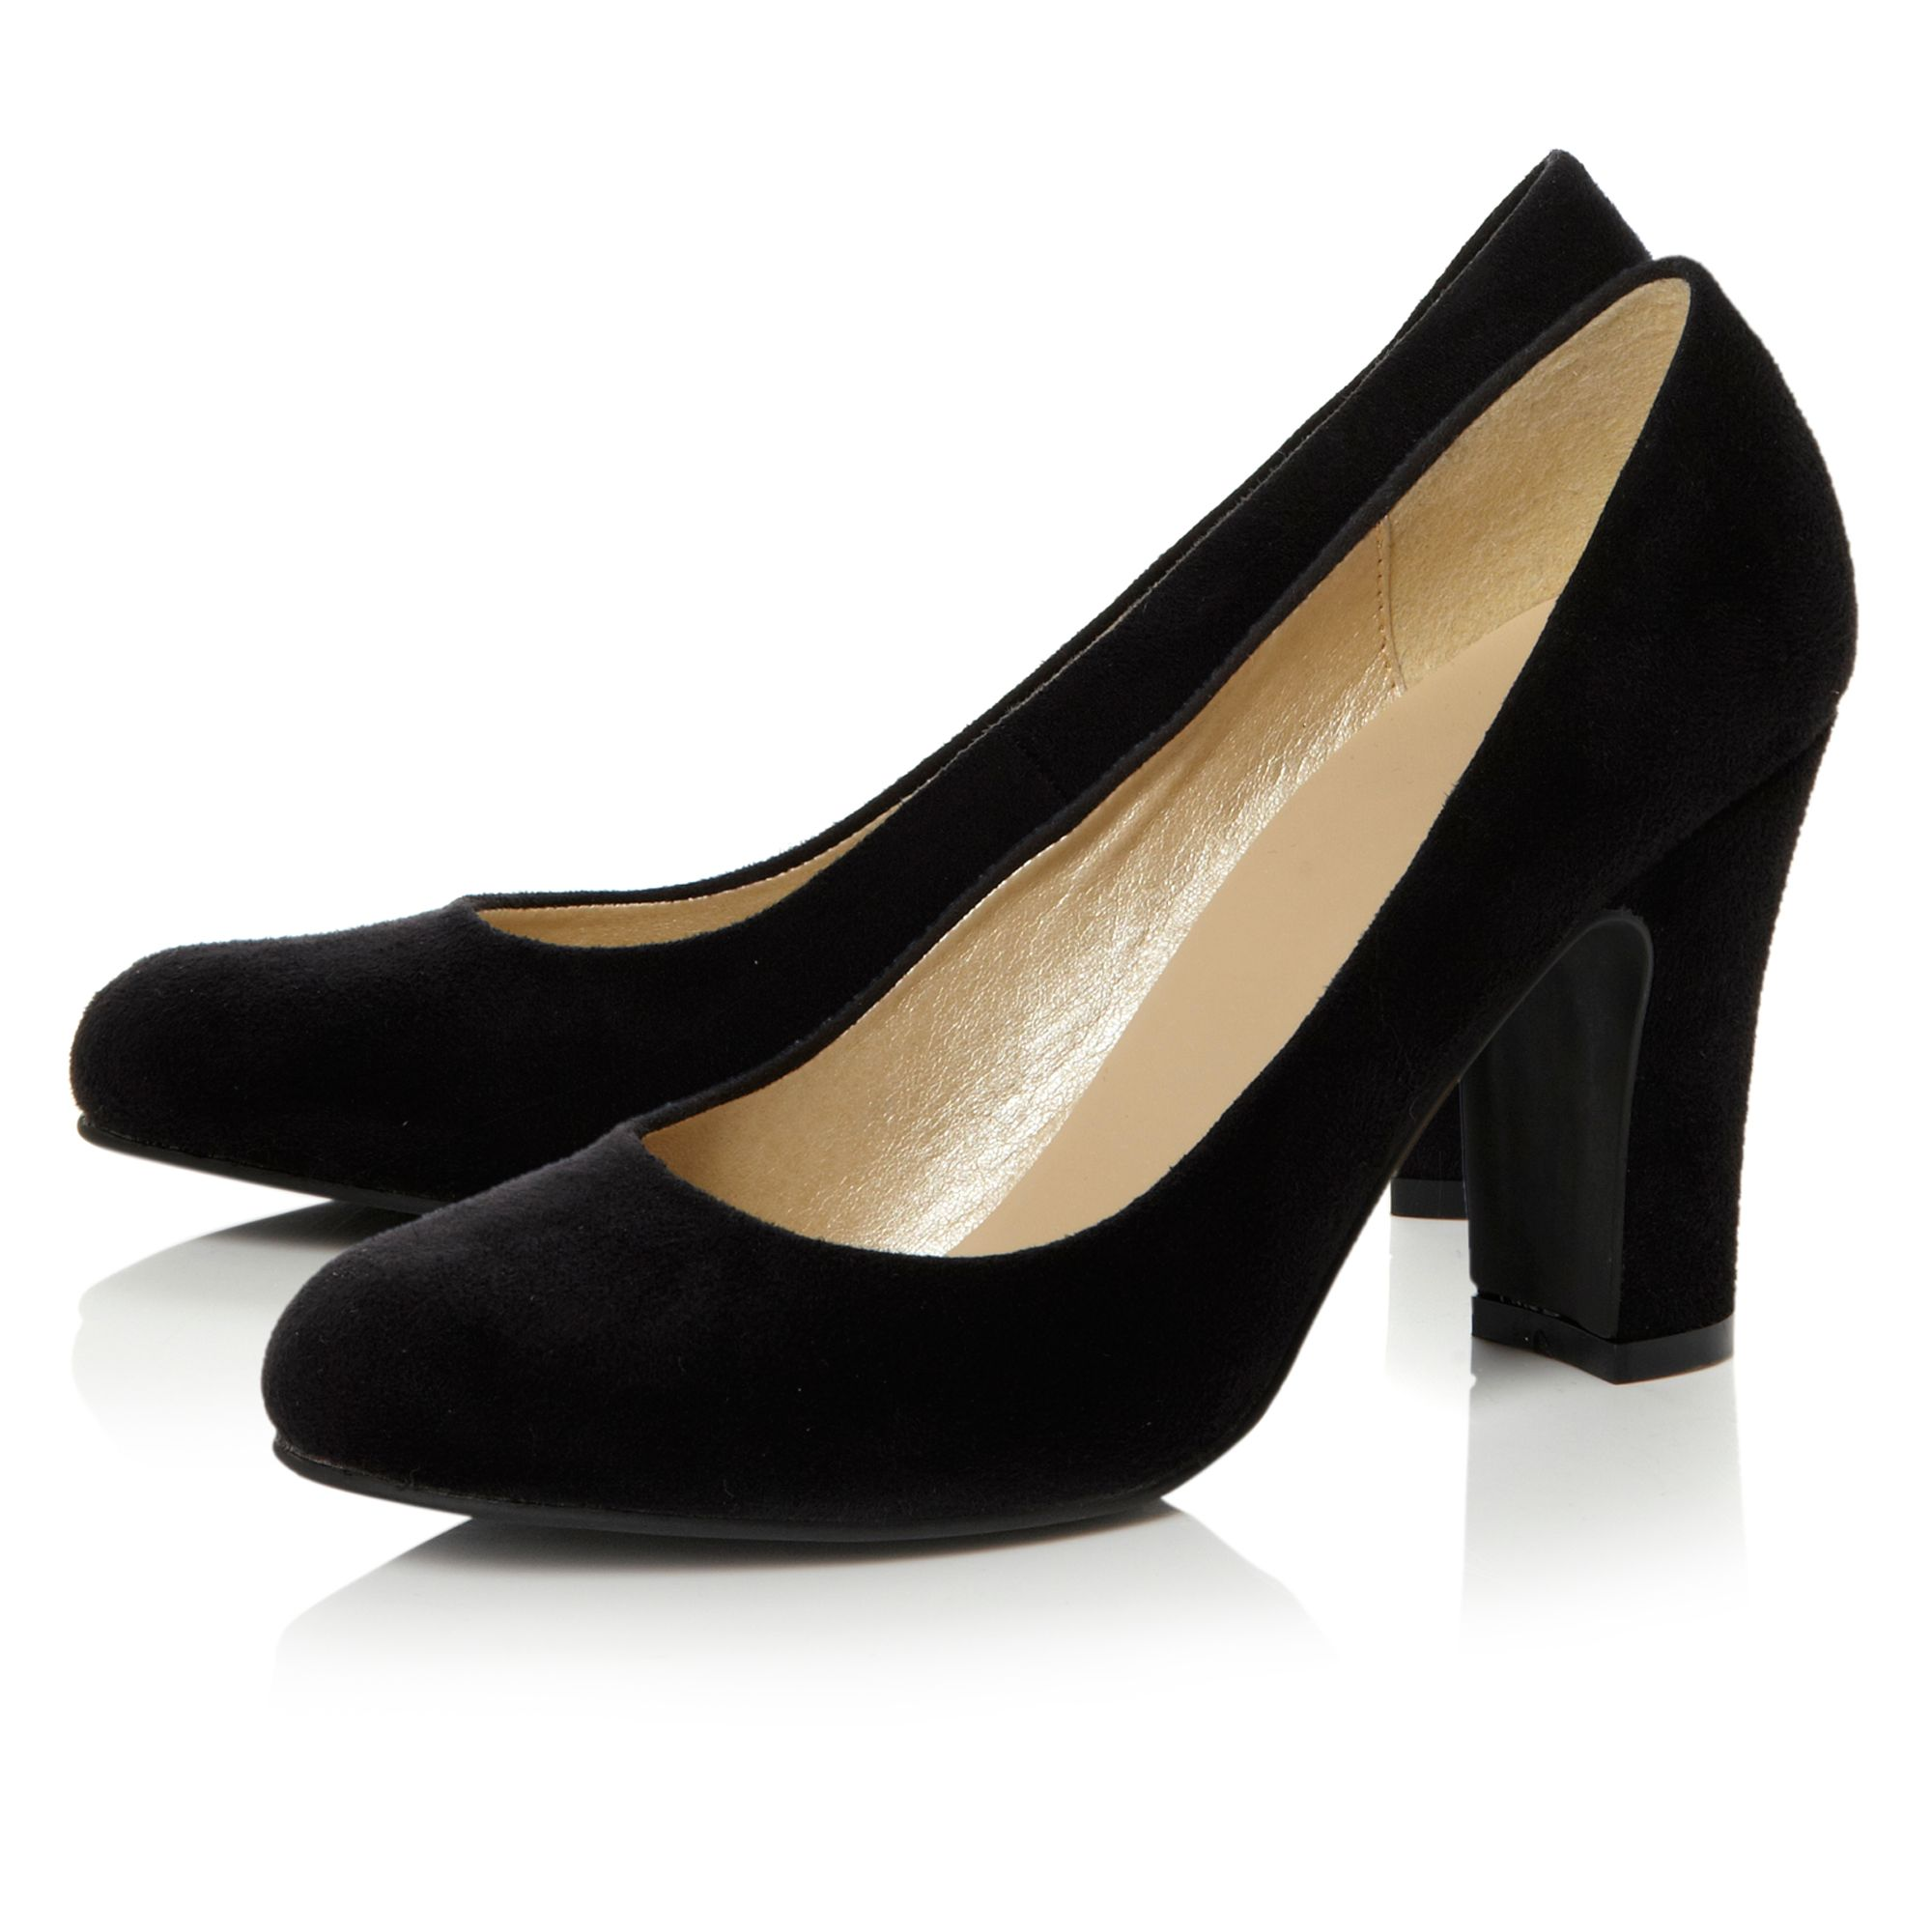 Almeria Plain Court Shoes